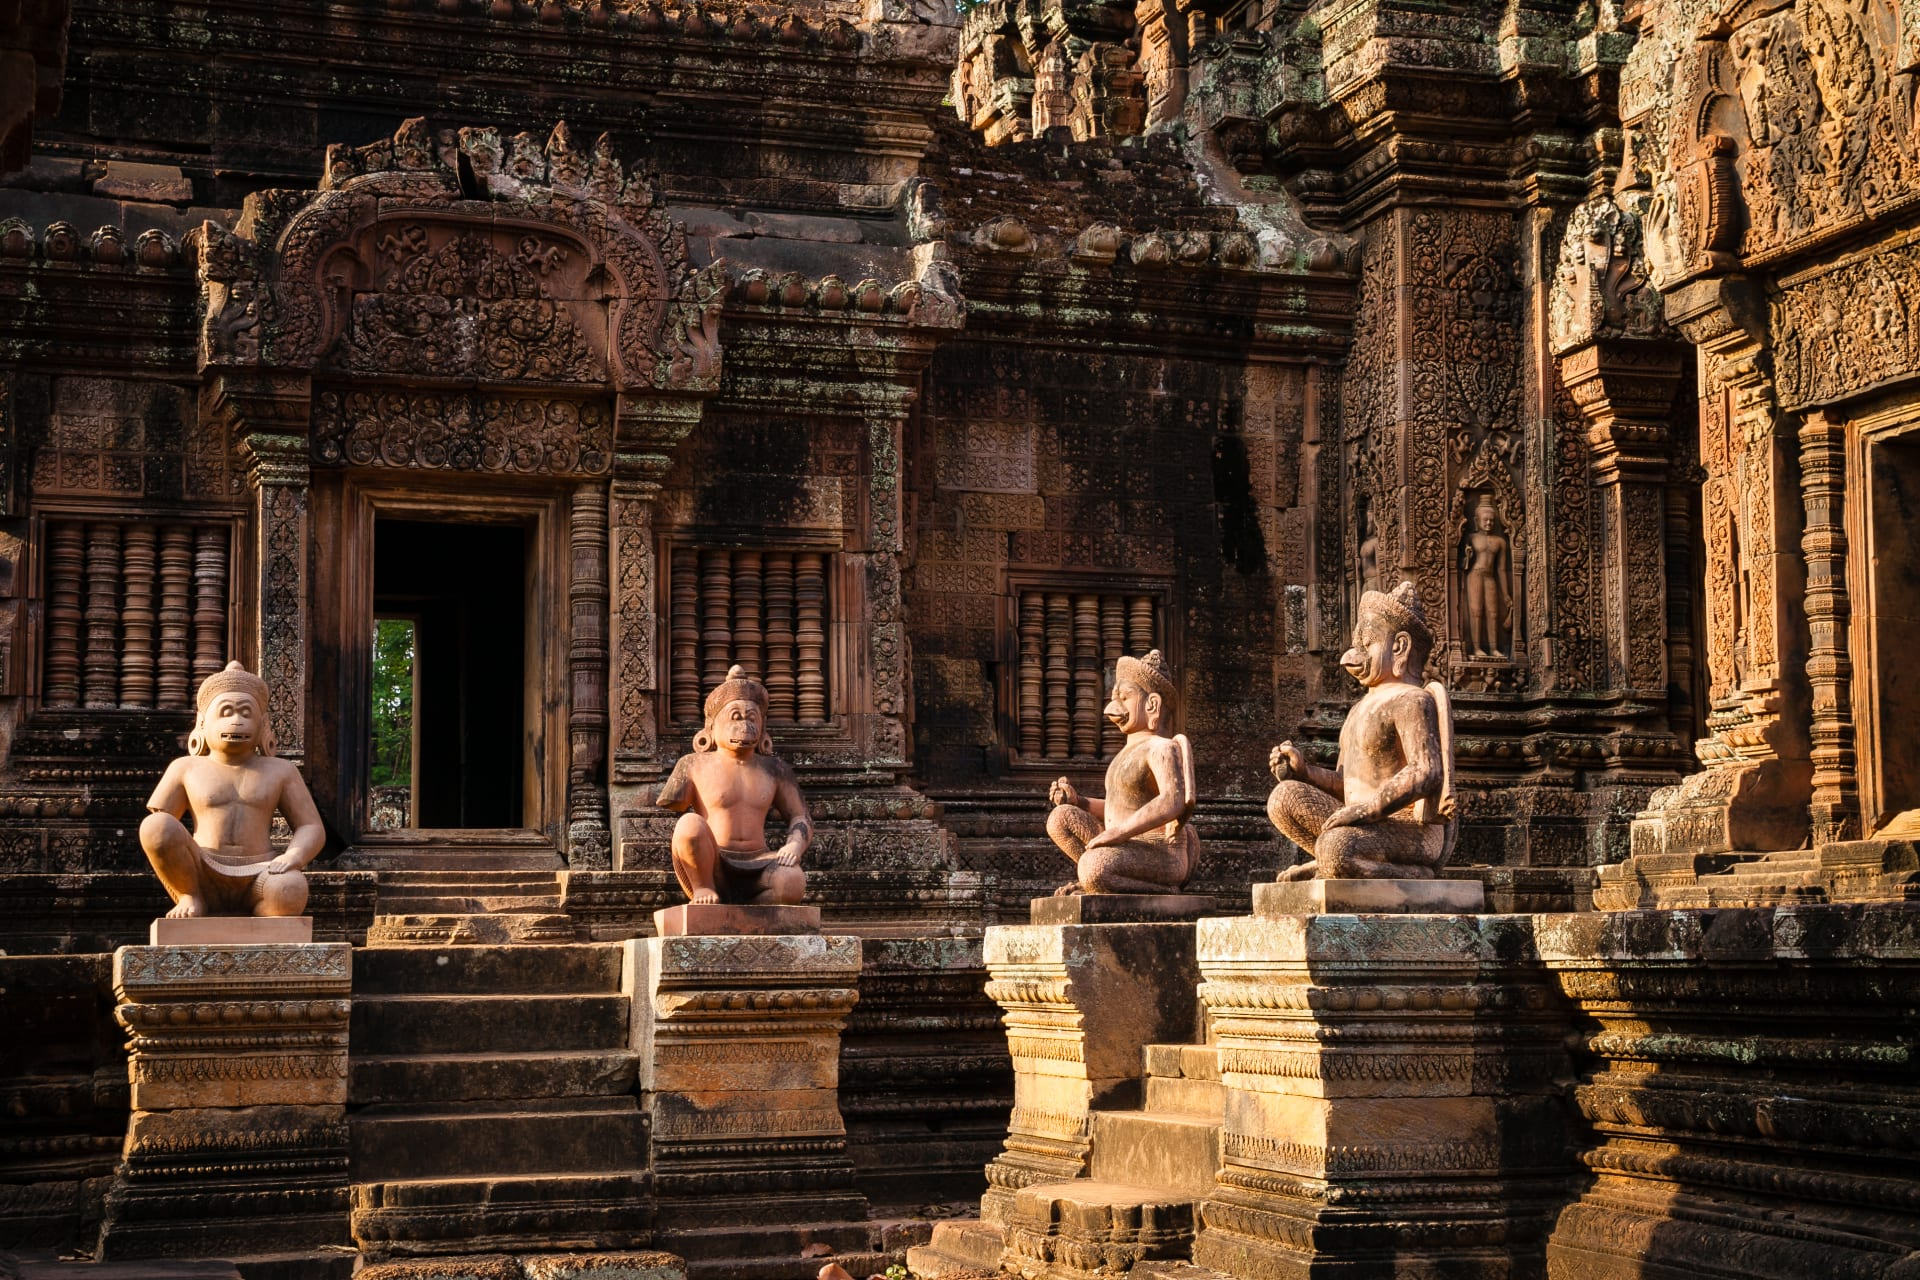 Siem Reap - Banteay Srei Temple - The Most Skillfully Crafted